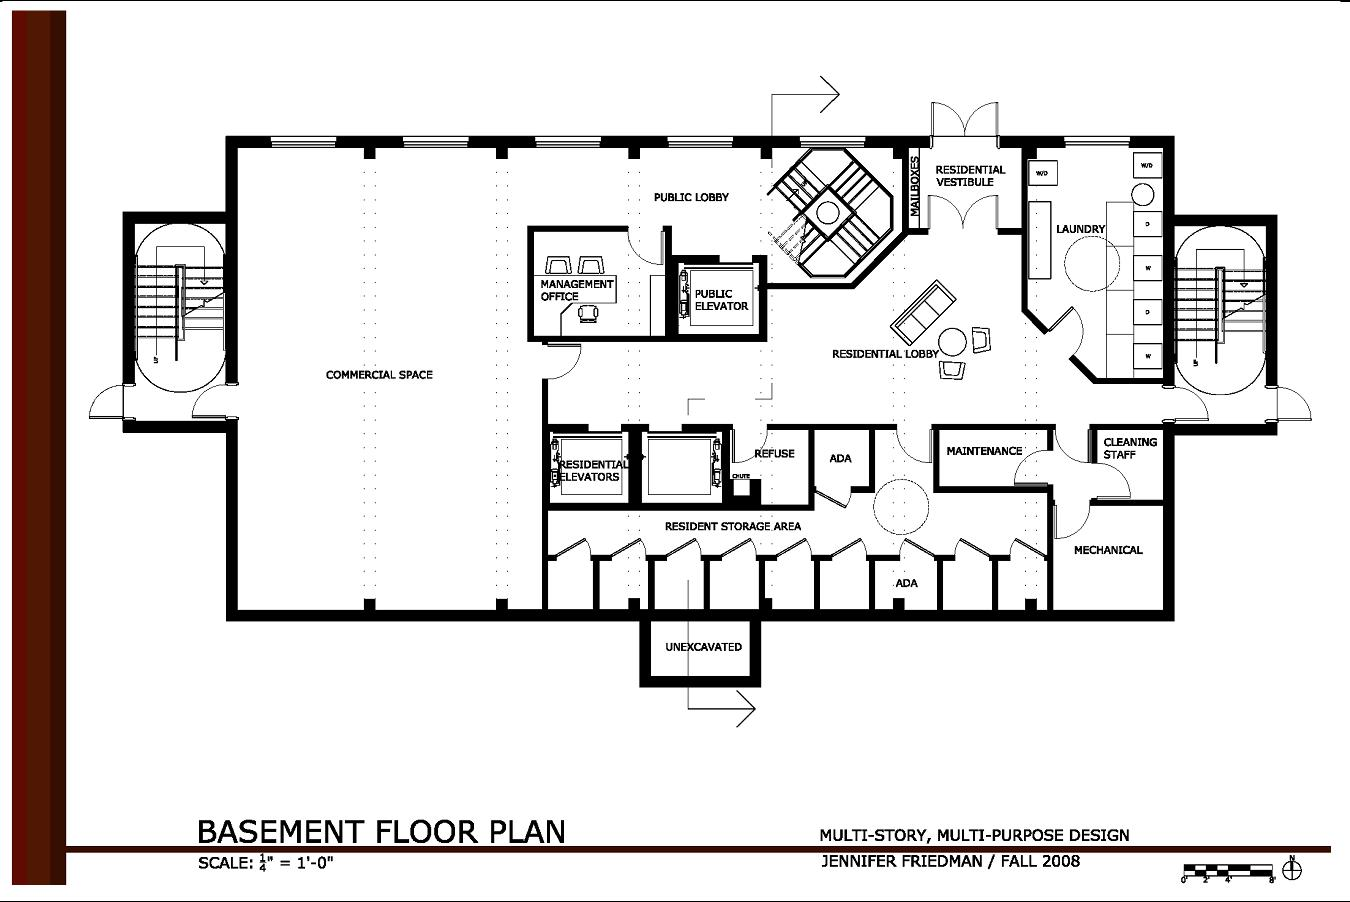 Multi story multi purpose design by jennifer friedman at for Multi purpose building plans